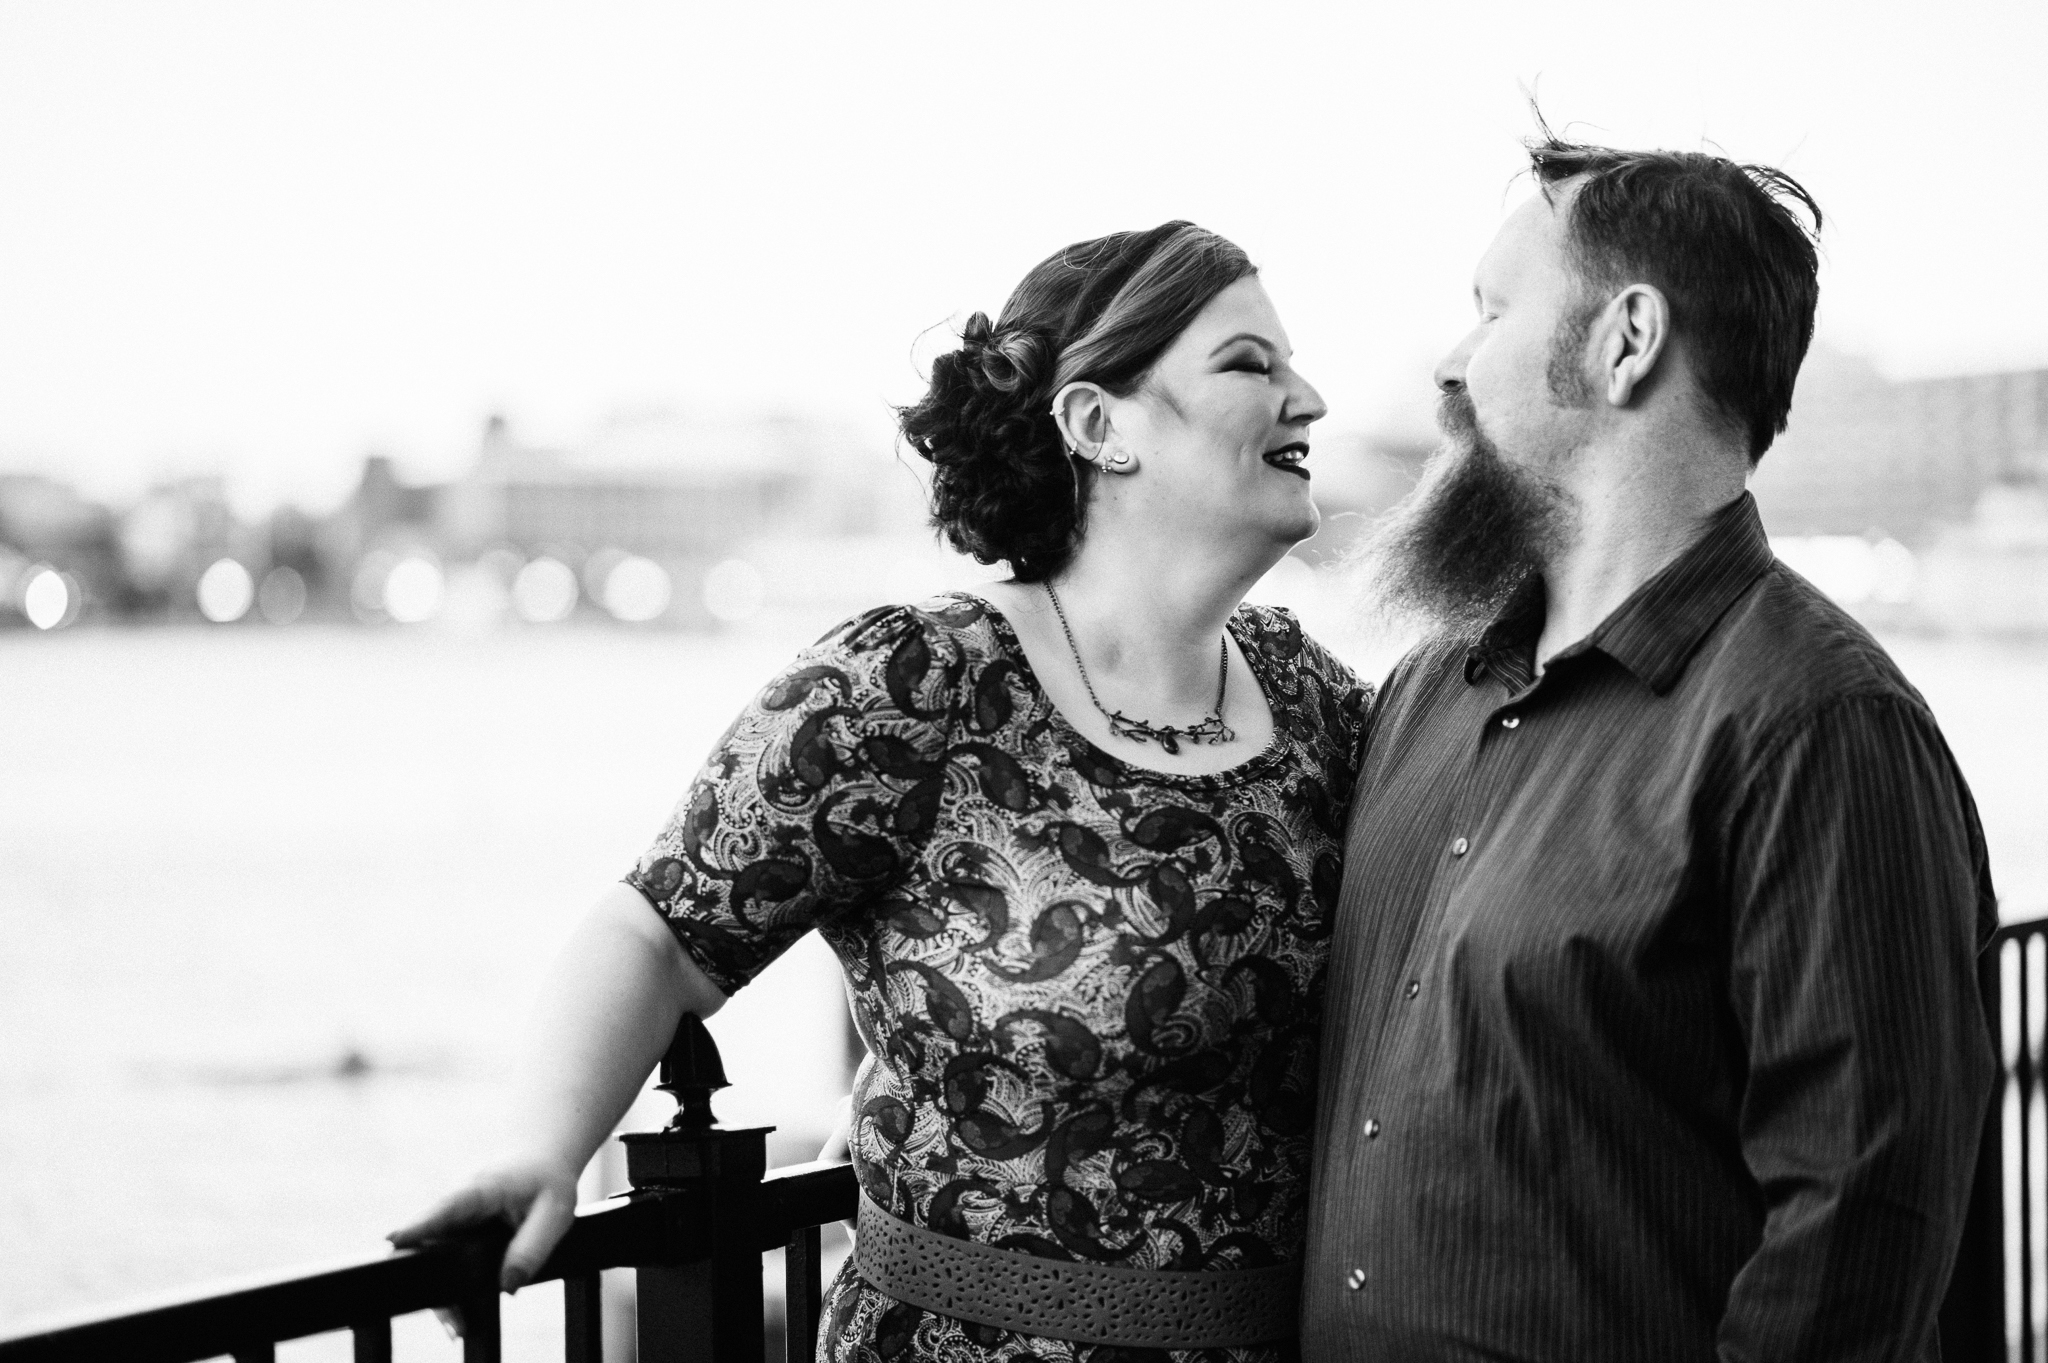 Bonnie and Josh Engagement in Baltimore, MD 04/04/17.  Photo Credit: Nicholas Karlin www.karlinvillondo.com